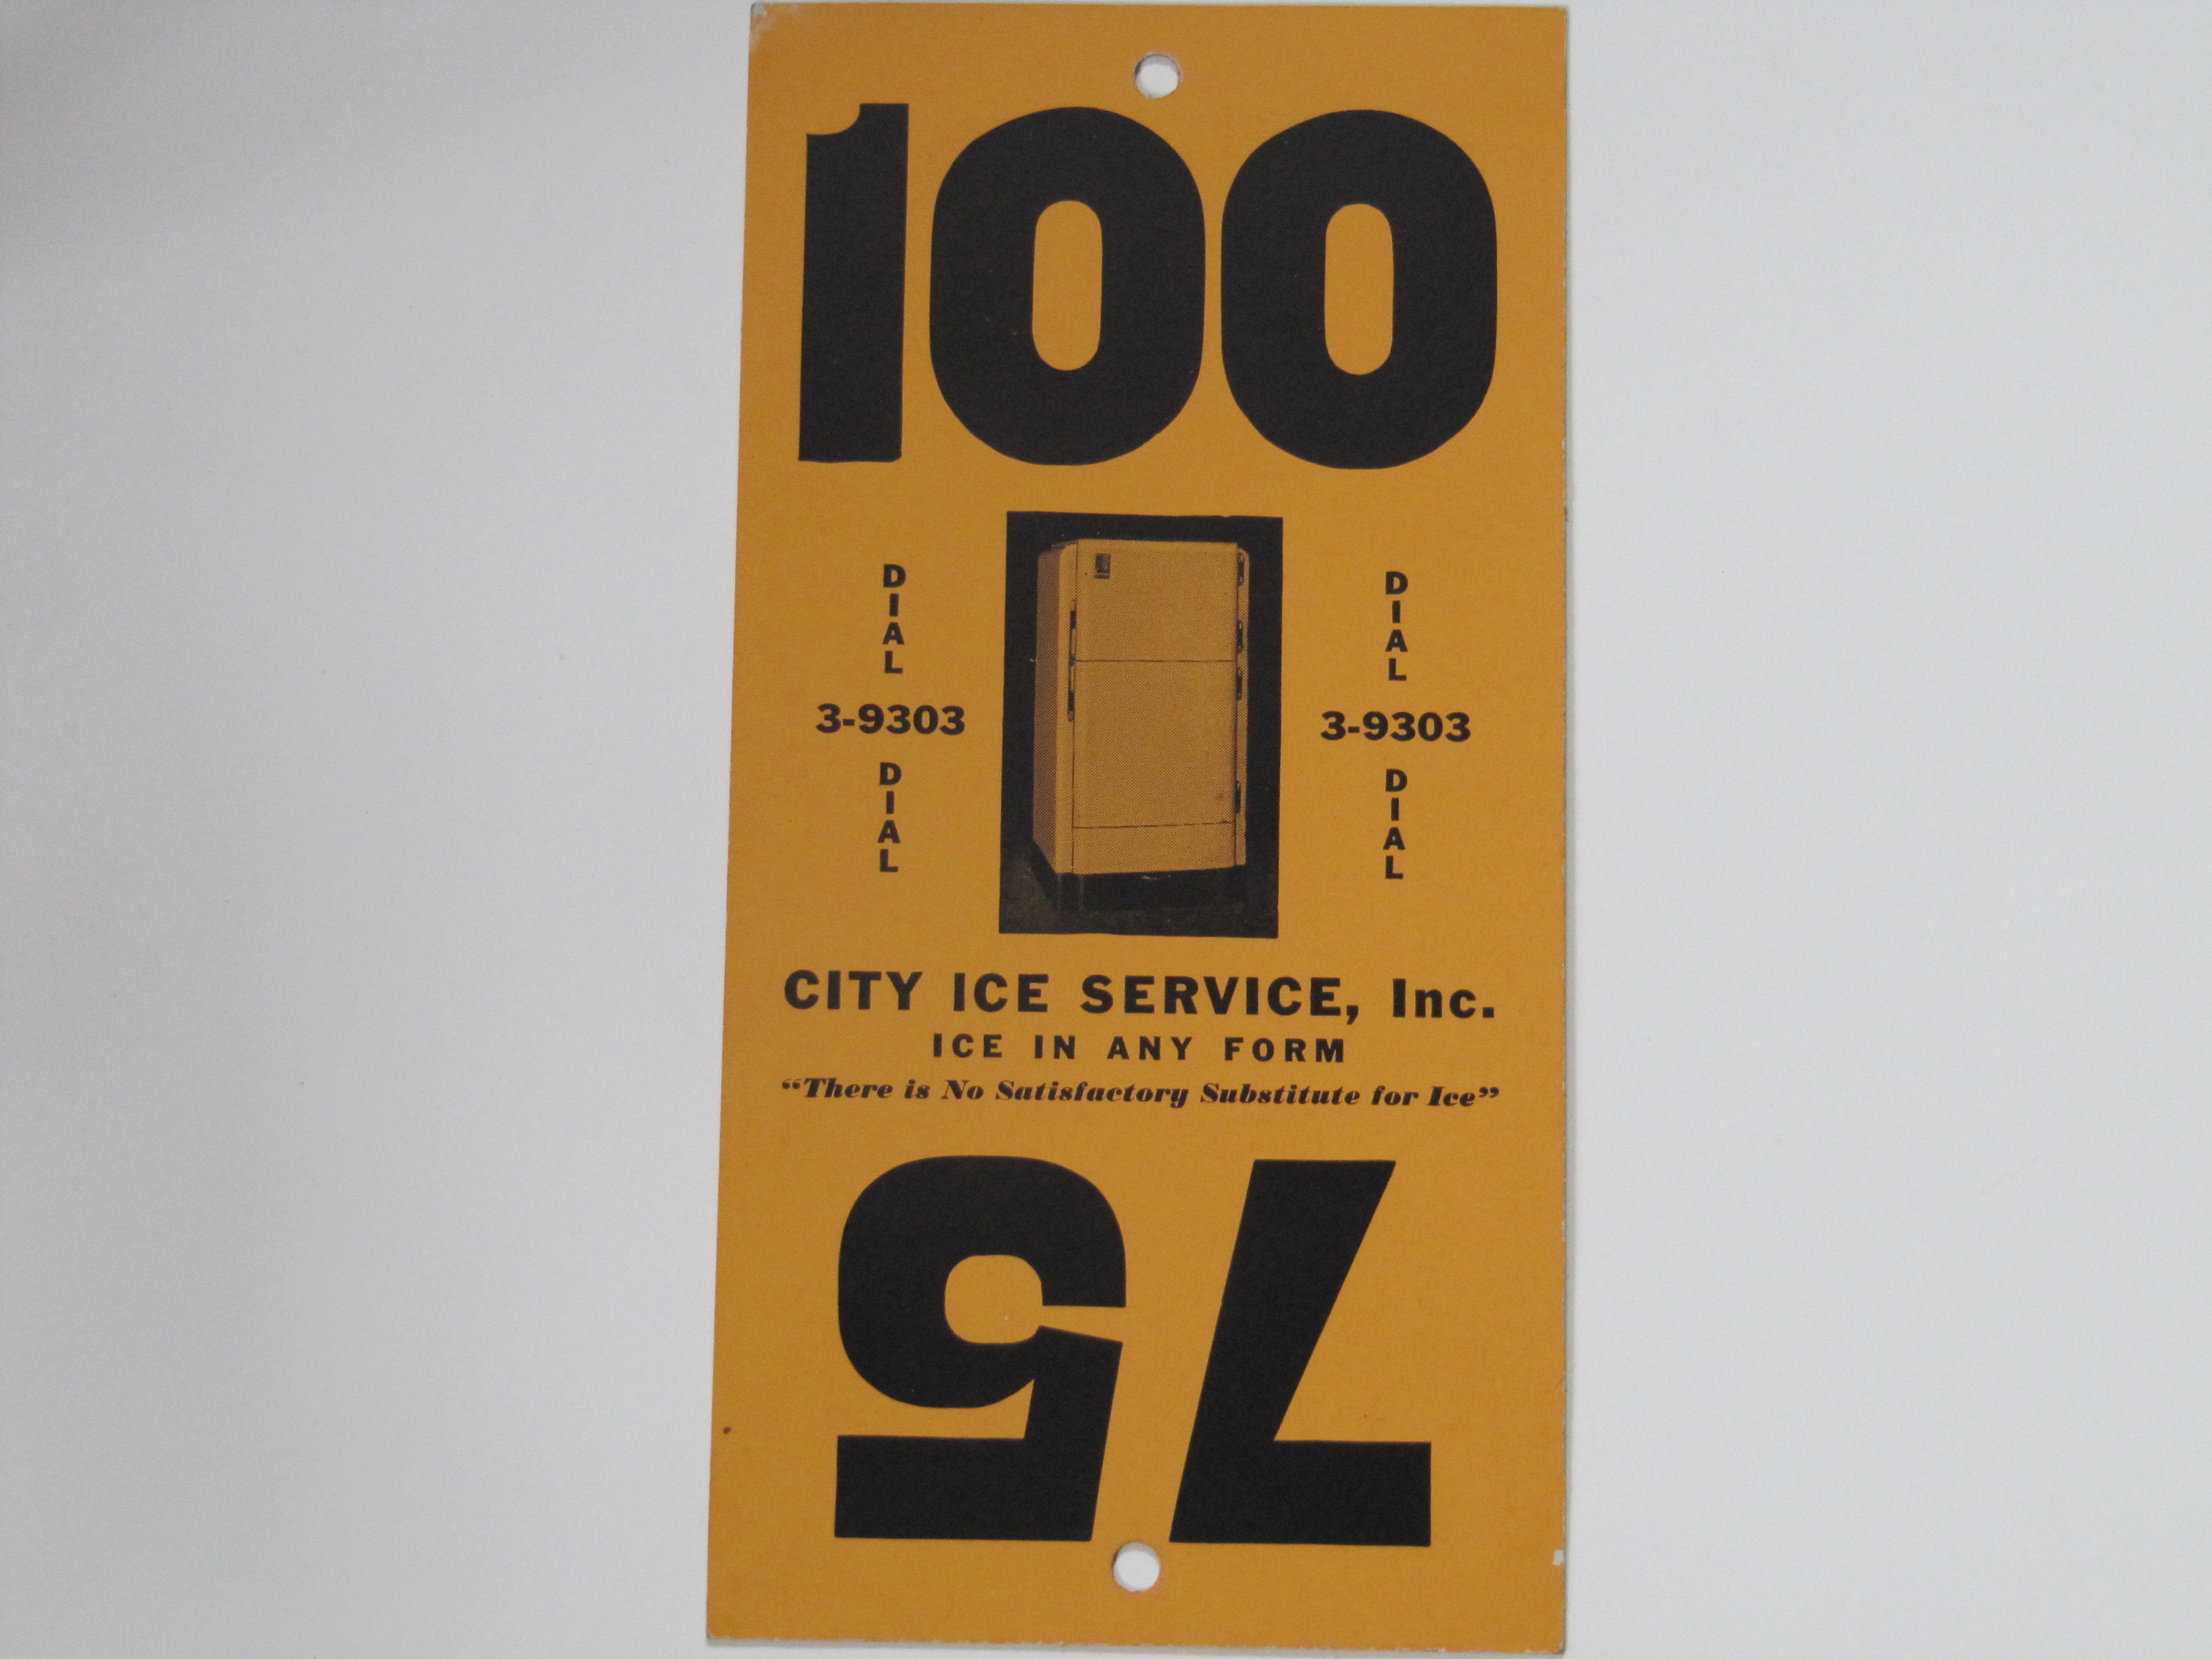 City Ice Service Inc.